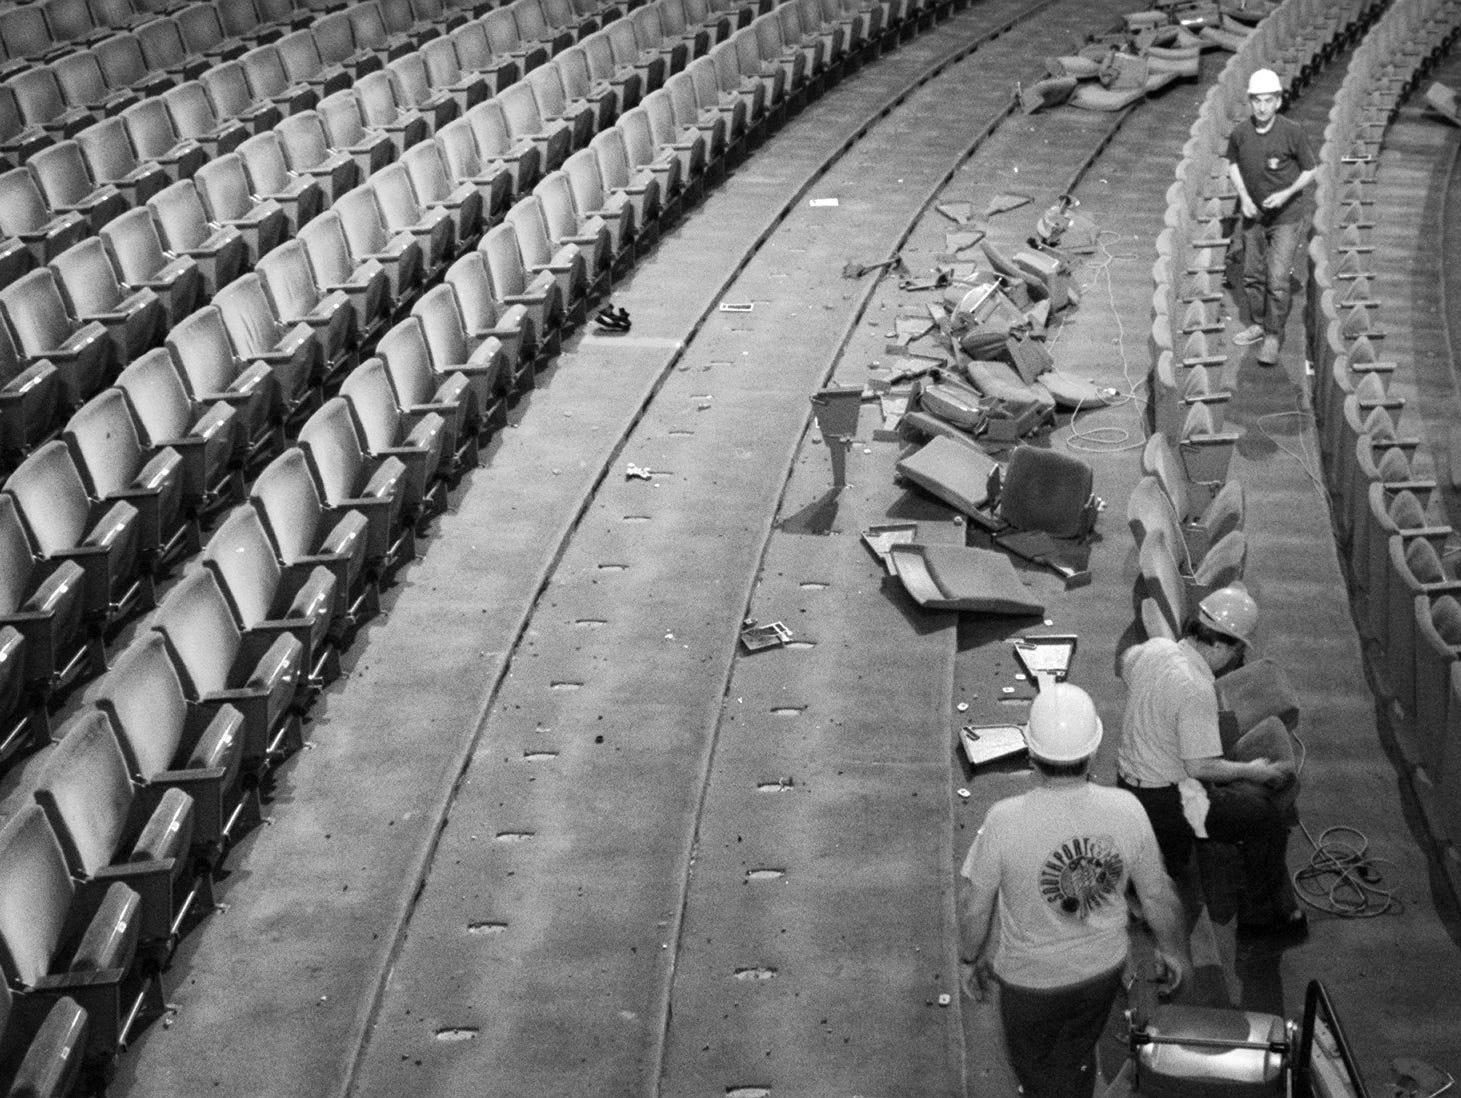 Workers remove seats during the start of a 5-month-long renovation project of Uihlein Hall at the Marcus Center for the Performing Arts on June 16, 1997 in MIlwaukee, Wis.(MIlwaukee Journal Sentinel photo by Rick Wood)